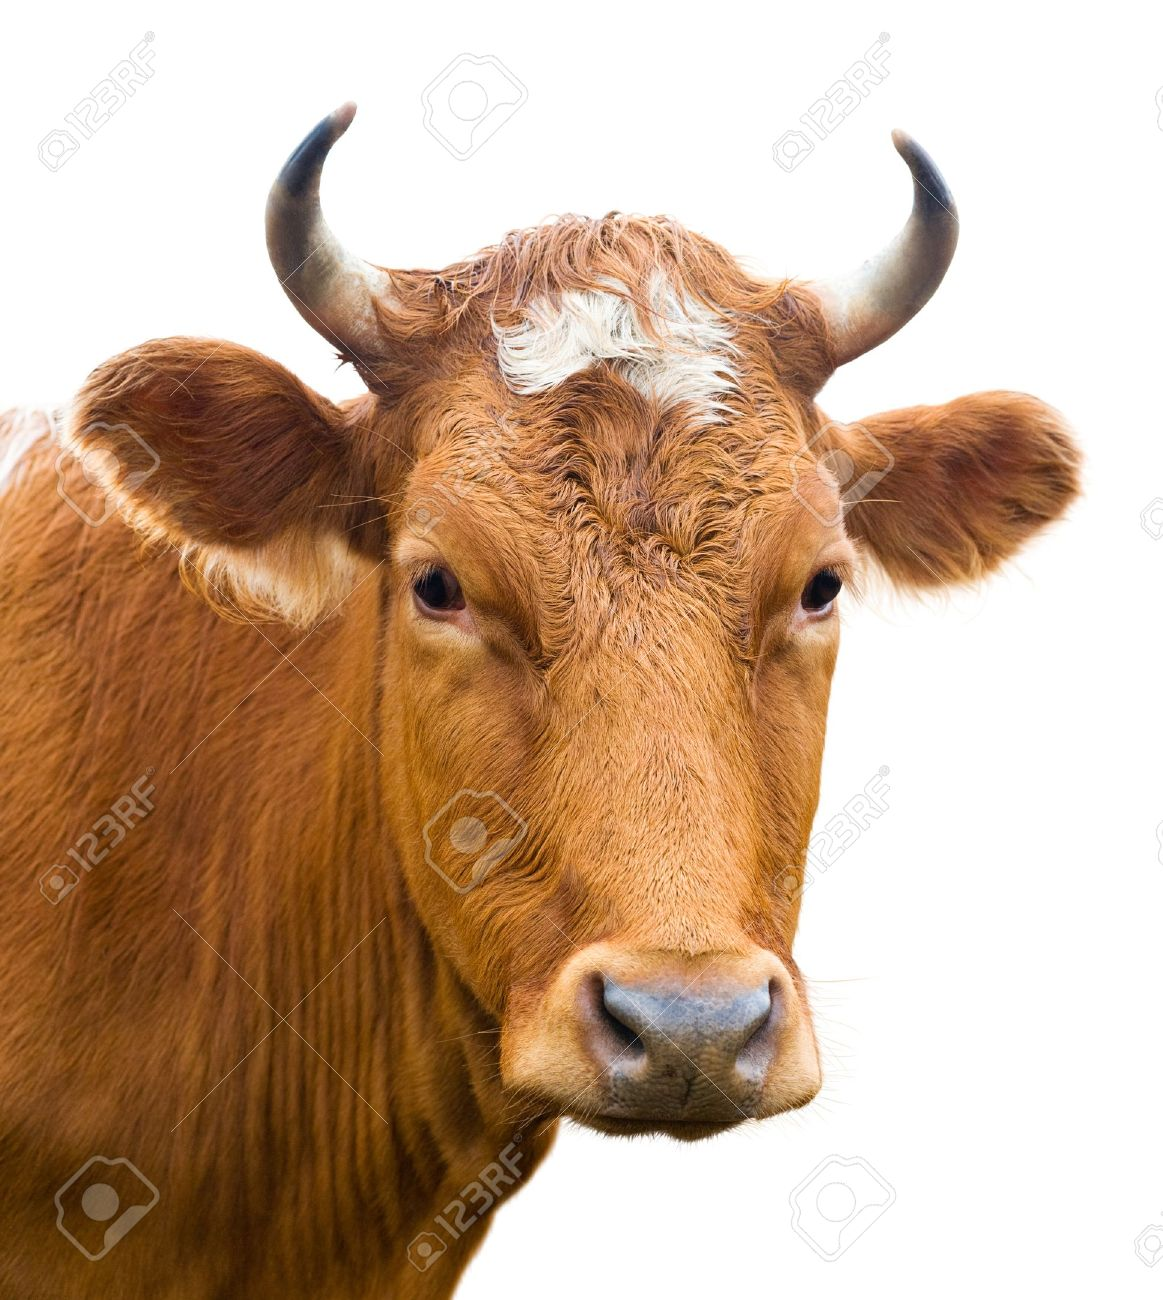 brown cow images u0026 stock pictures royalty free brown cow photos